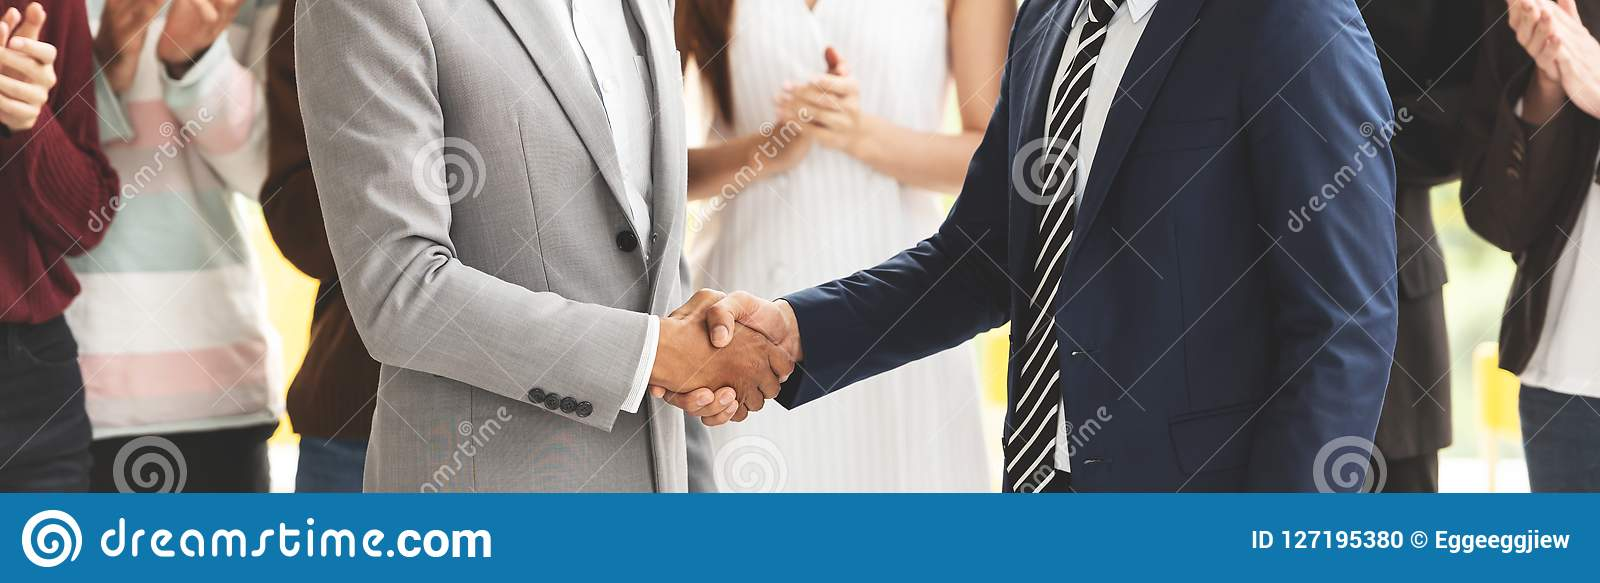 Cropped Image of Successful Businessmen shaking hands together.